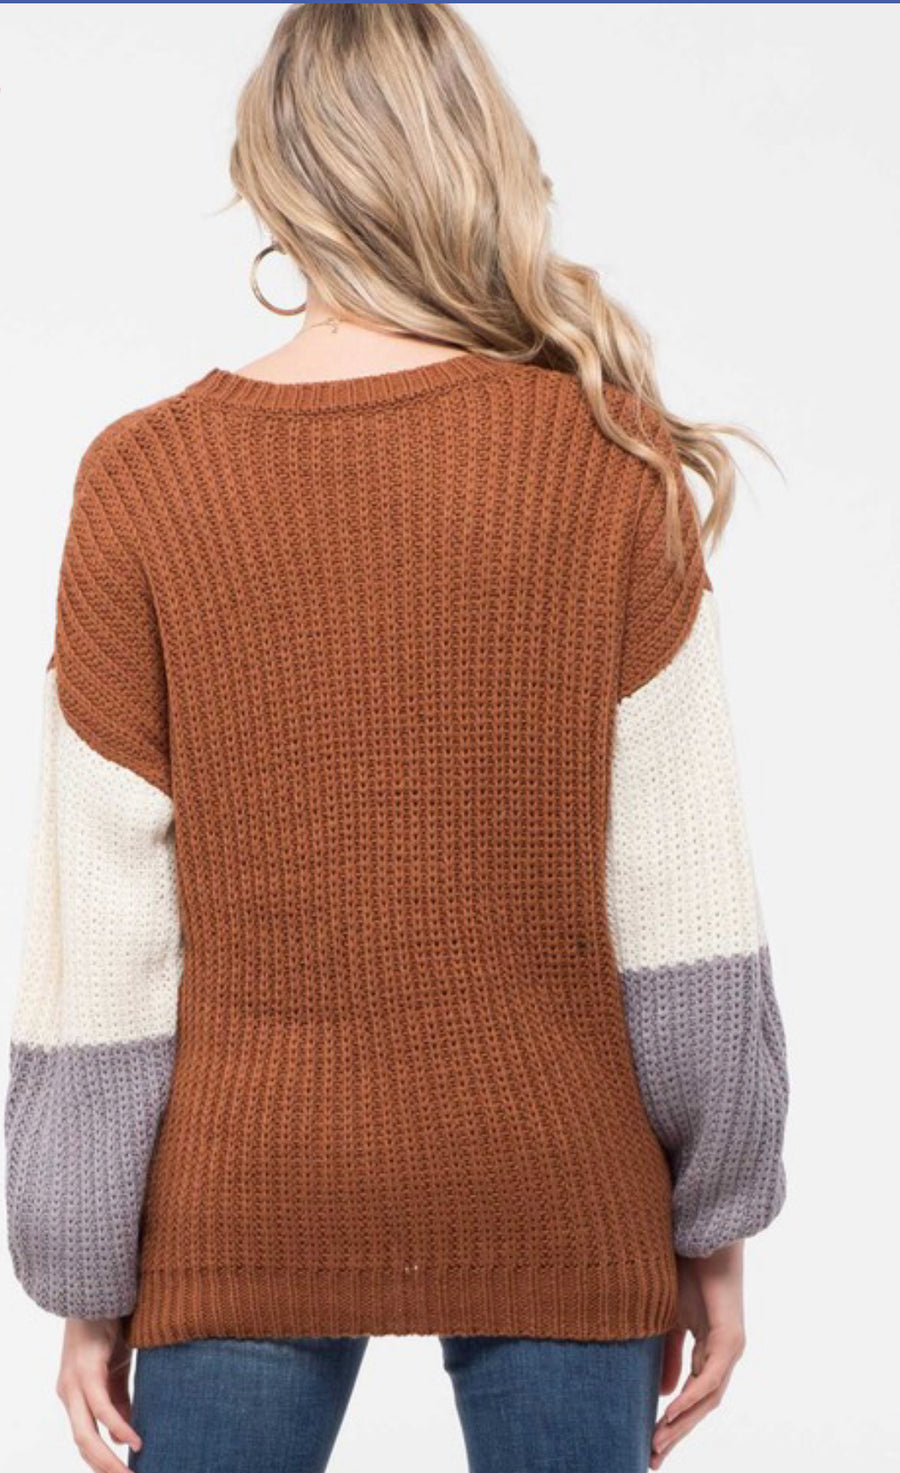 Pull Over Color Block Sweater - Shop Amour Boutique